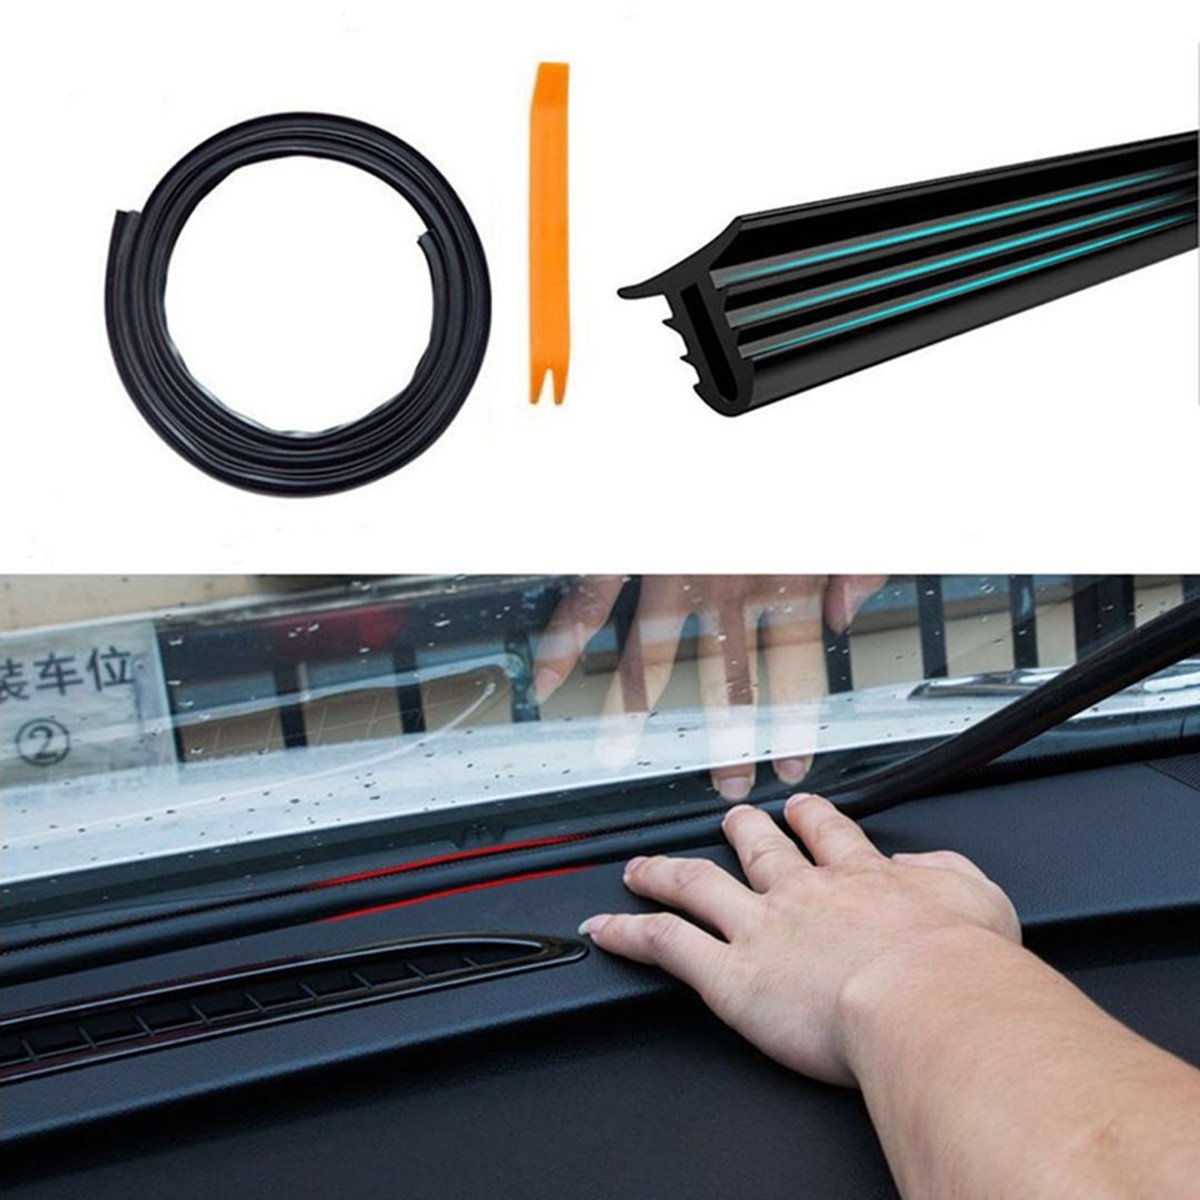 HENGJIA Auto Parts 1.6M Edge Trim Rubber Dust and Noise Seal Protector Guard Strip for The Space Between Dashboard and Windshield of Cars